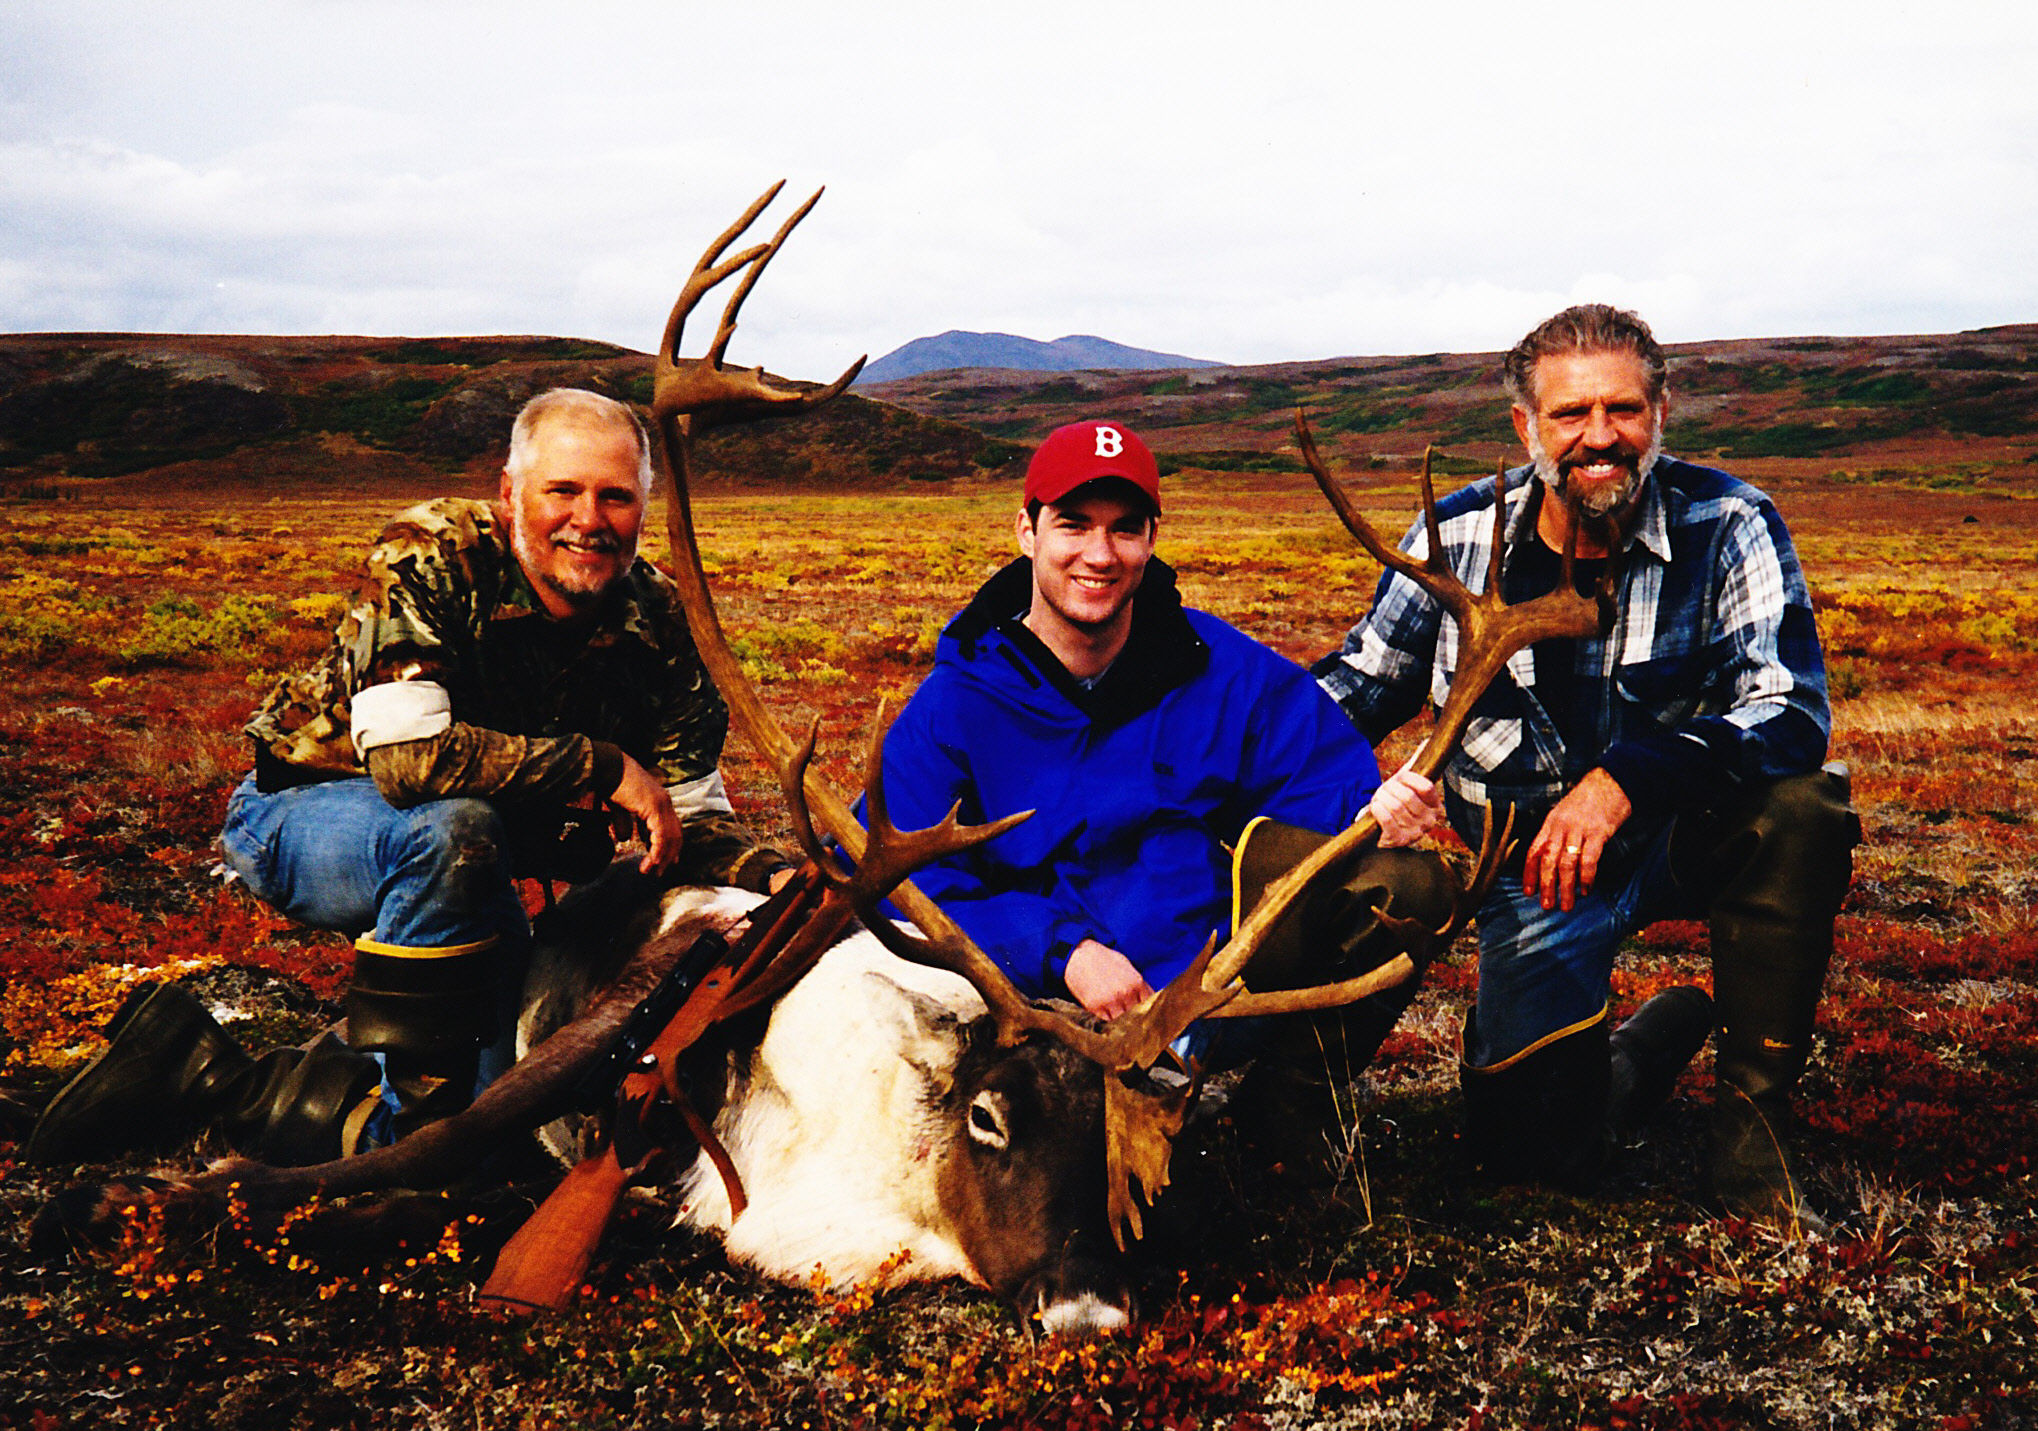 (L to R) Guide Dennis Byrne, client Mike Sweeney, from Upton, MA and myself.